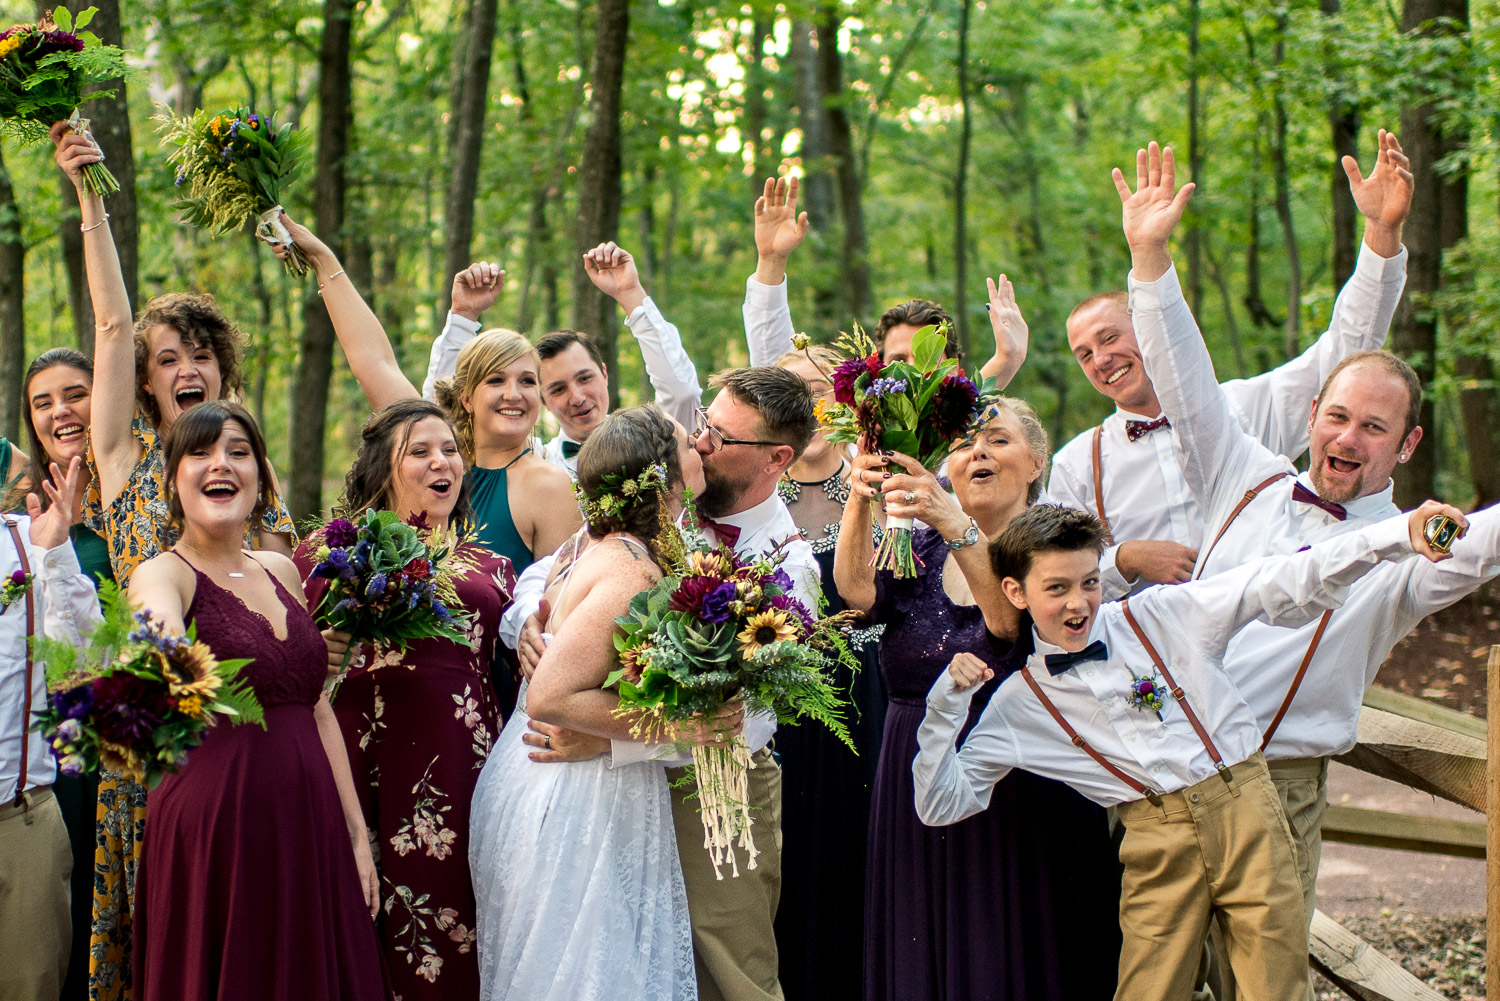 portrait of wedding party surrounding bride and groom in woods